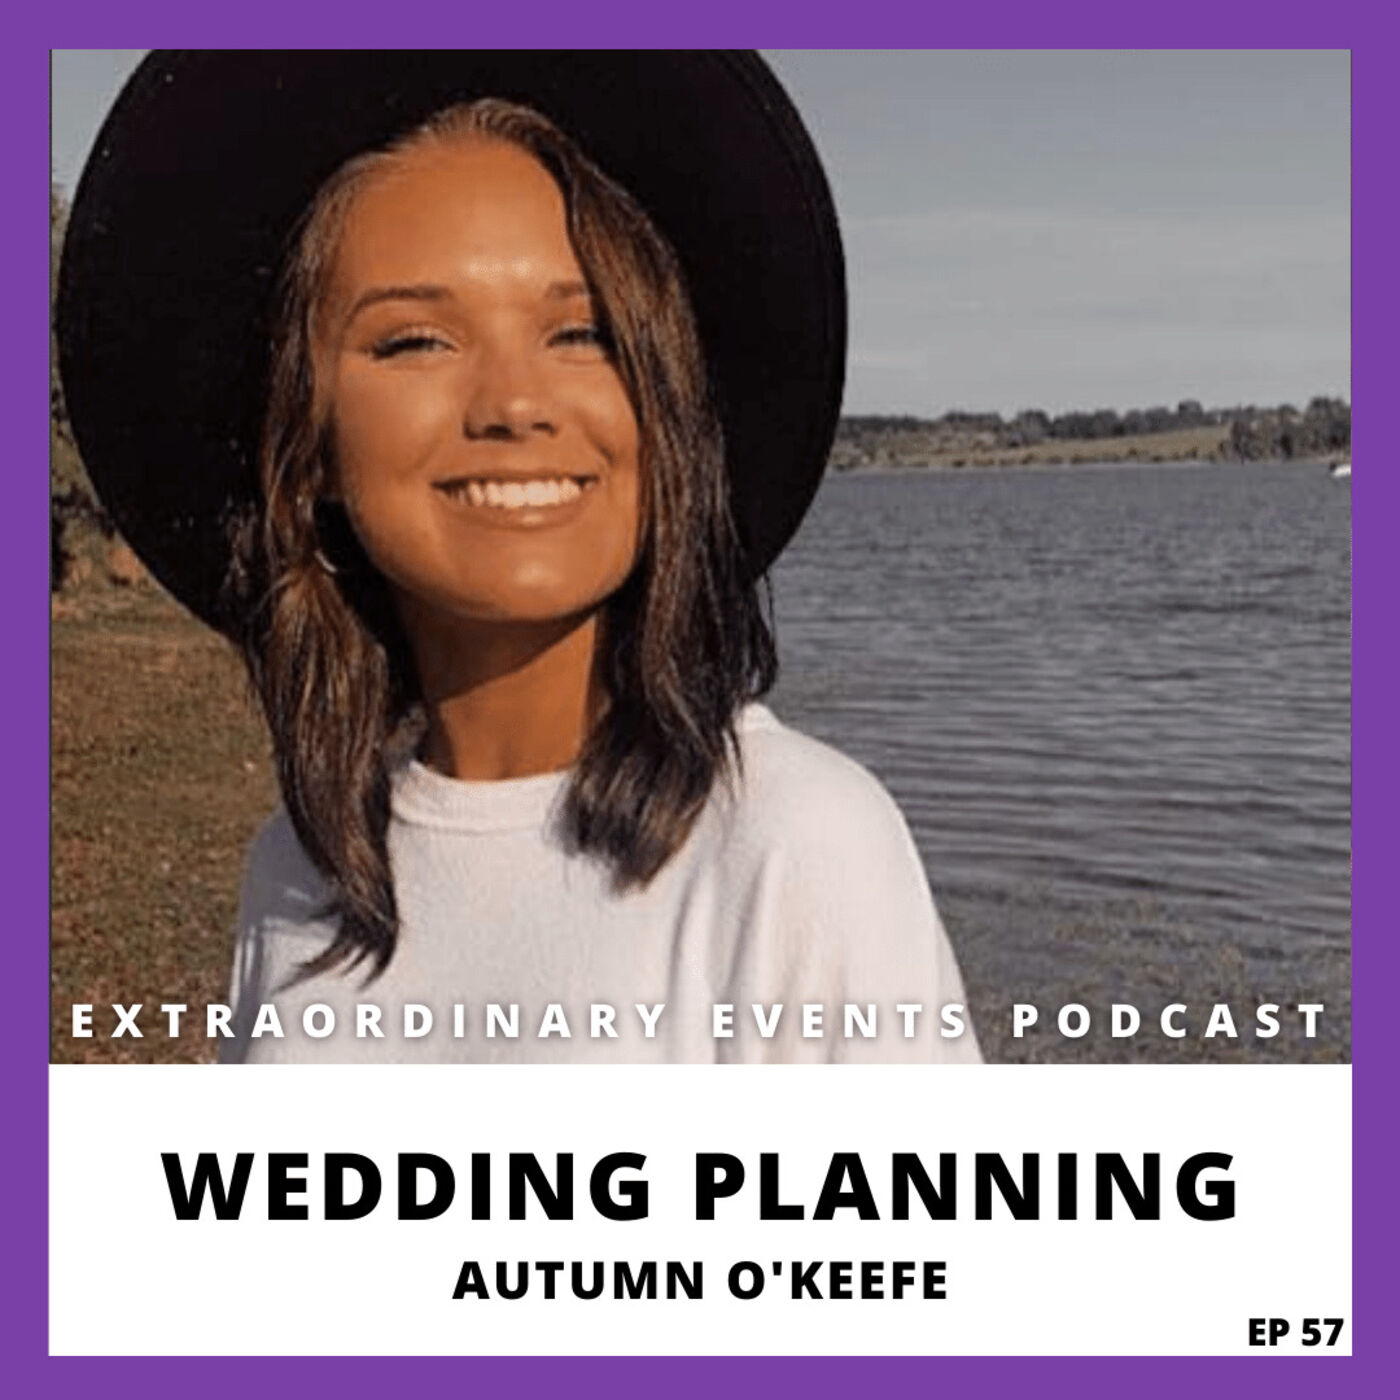 Ep 57: Wedding Planning with Autumn O'Keefe